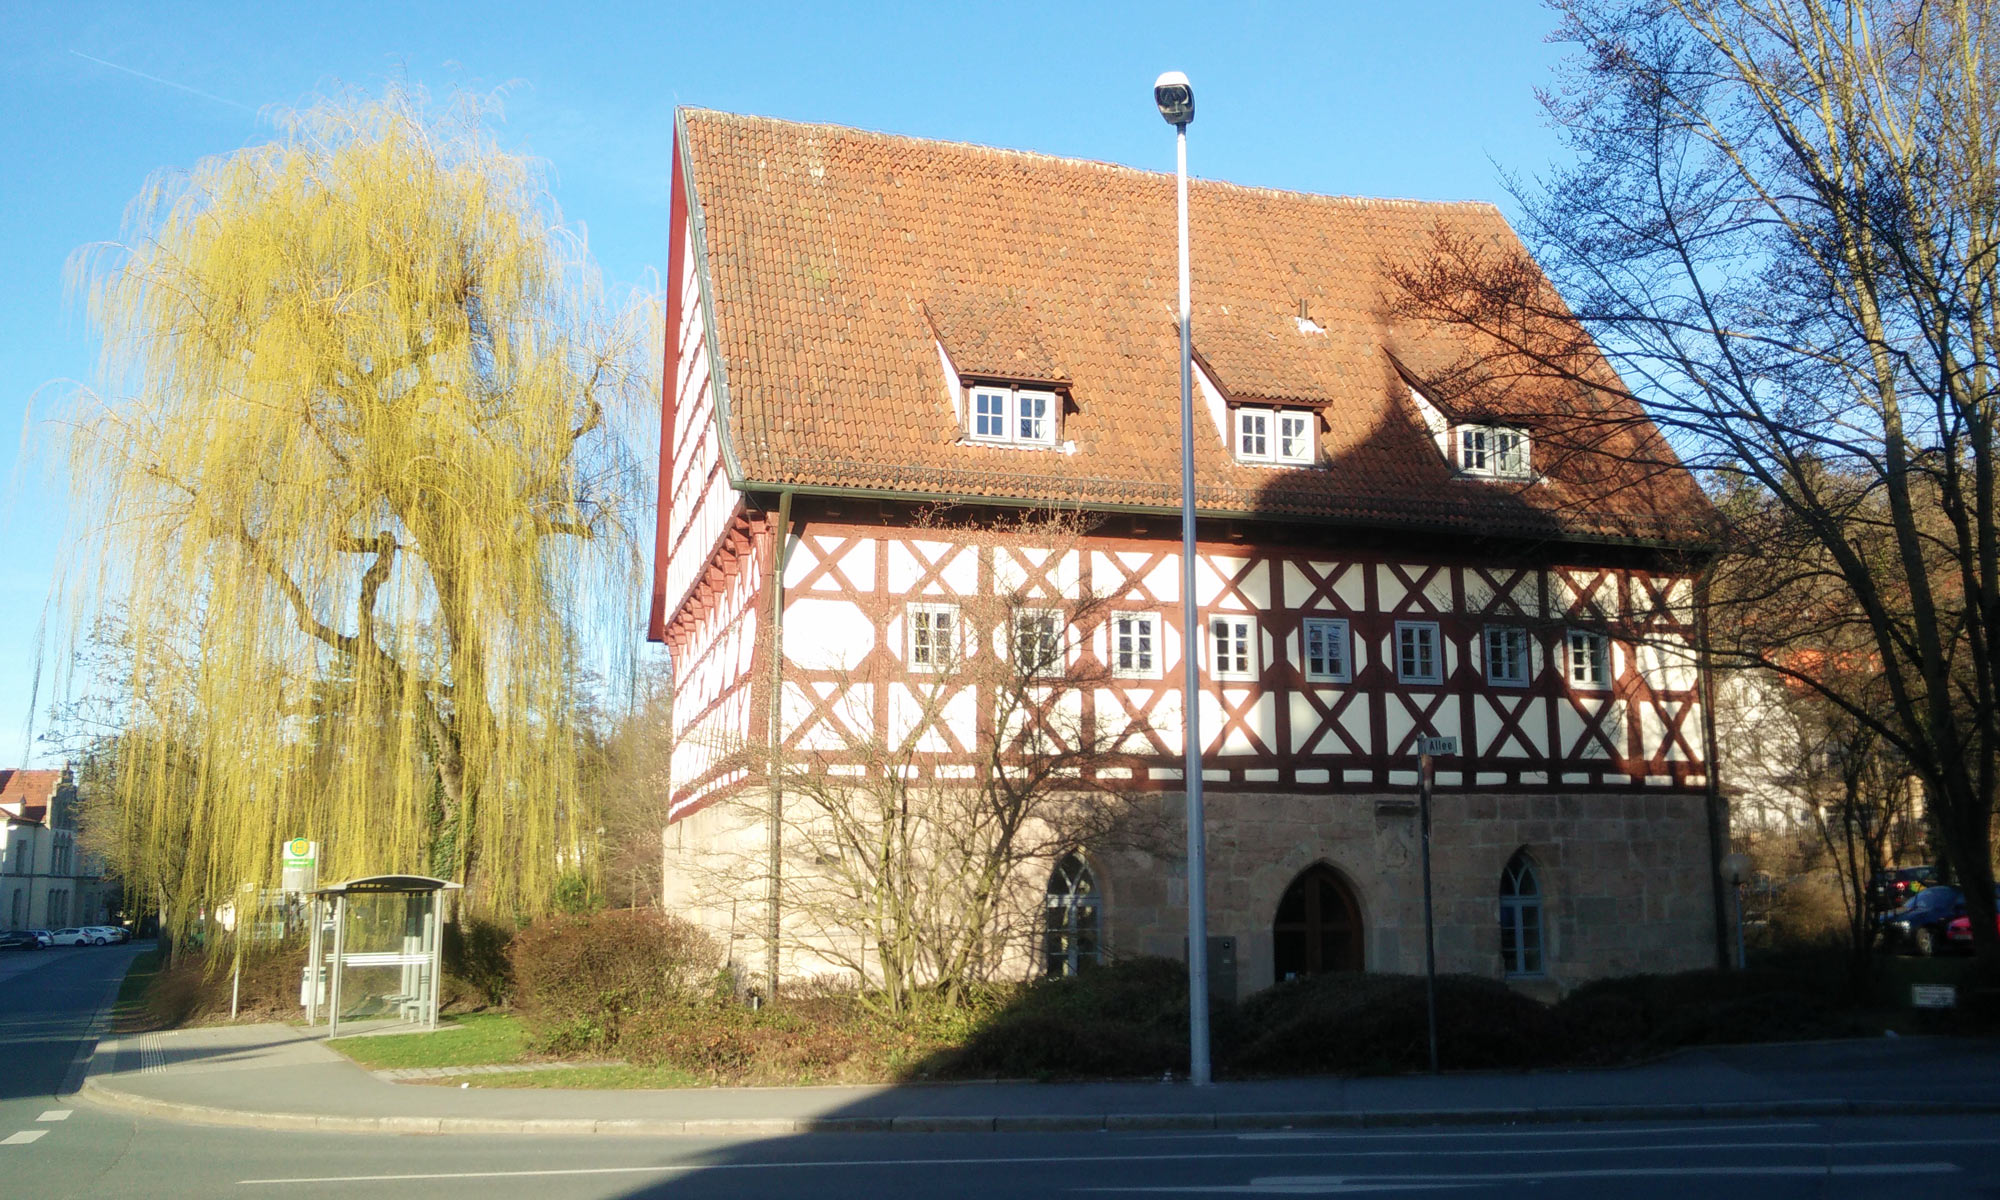 building authority in large half-timbered house in Coburg